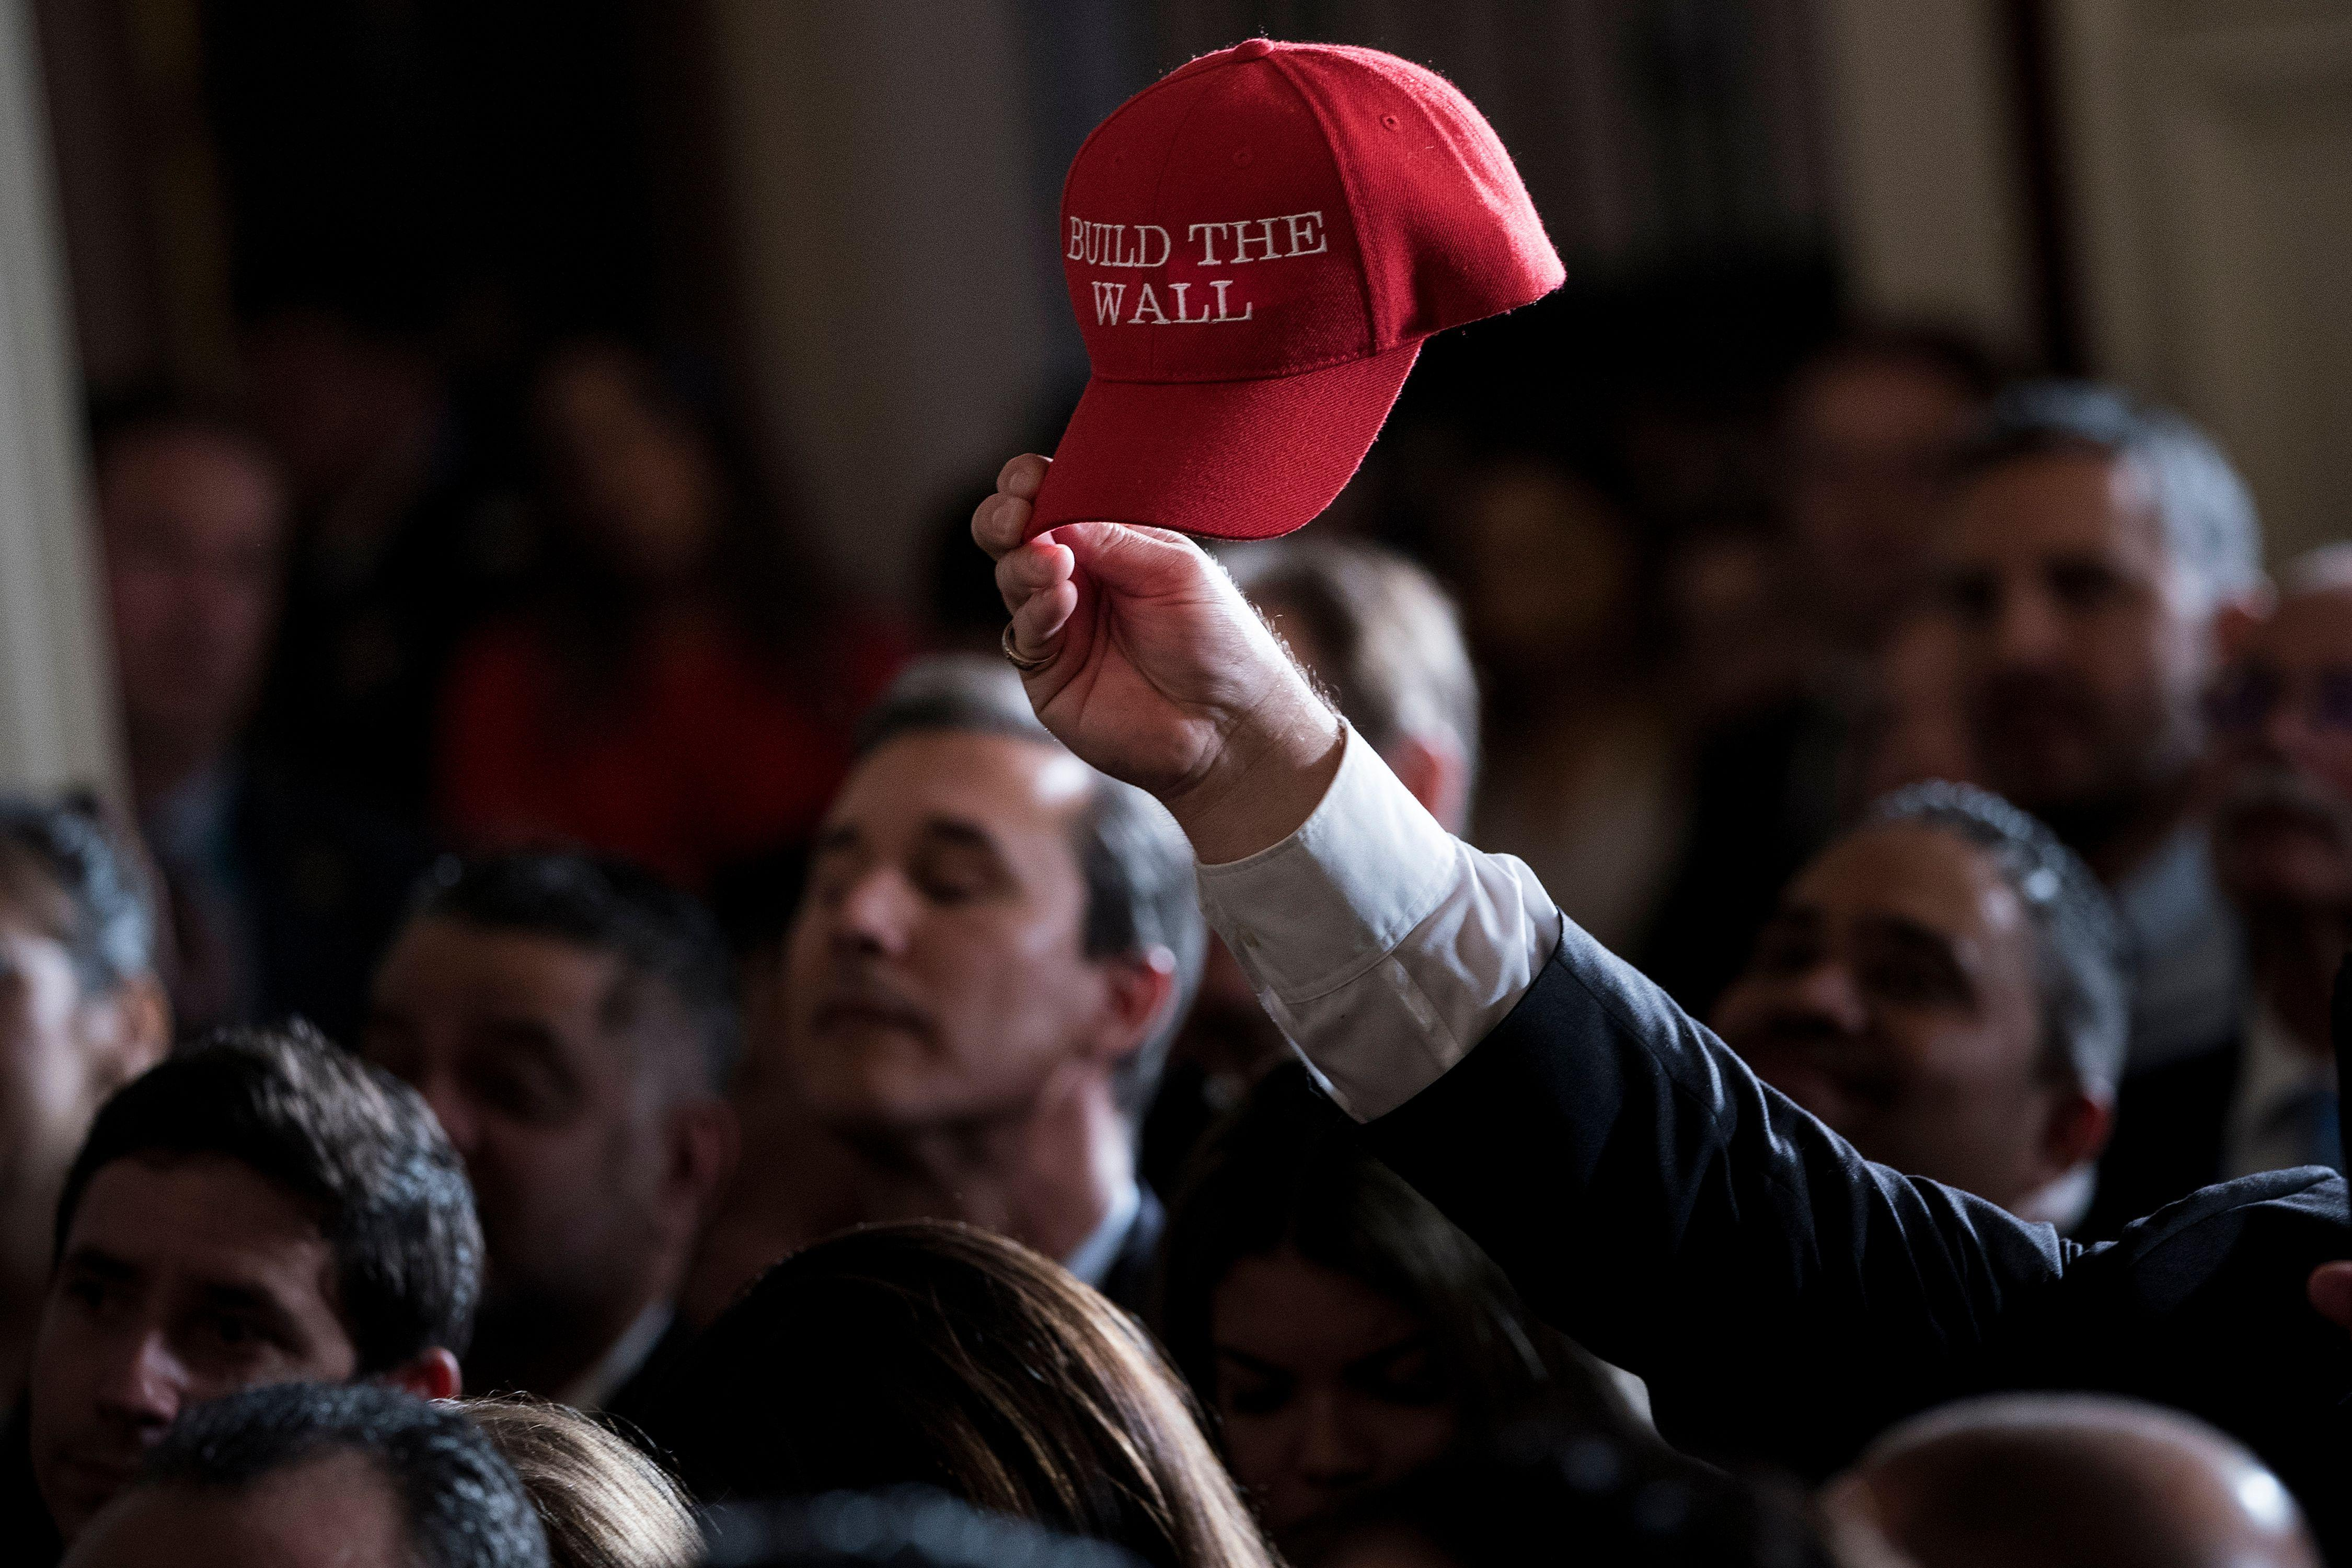 Fredy Burgos, of Virginia, holds up a 'Build the Wall' hat while waiting with others for a Hispanic Heritage Month event in the East Room of the White House